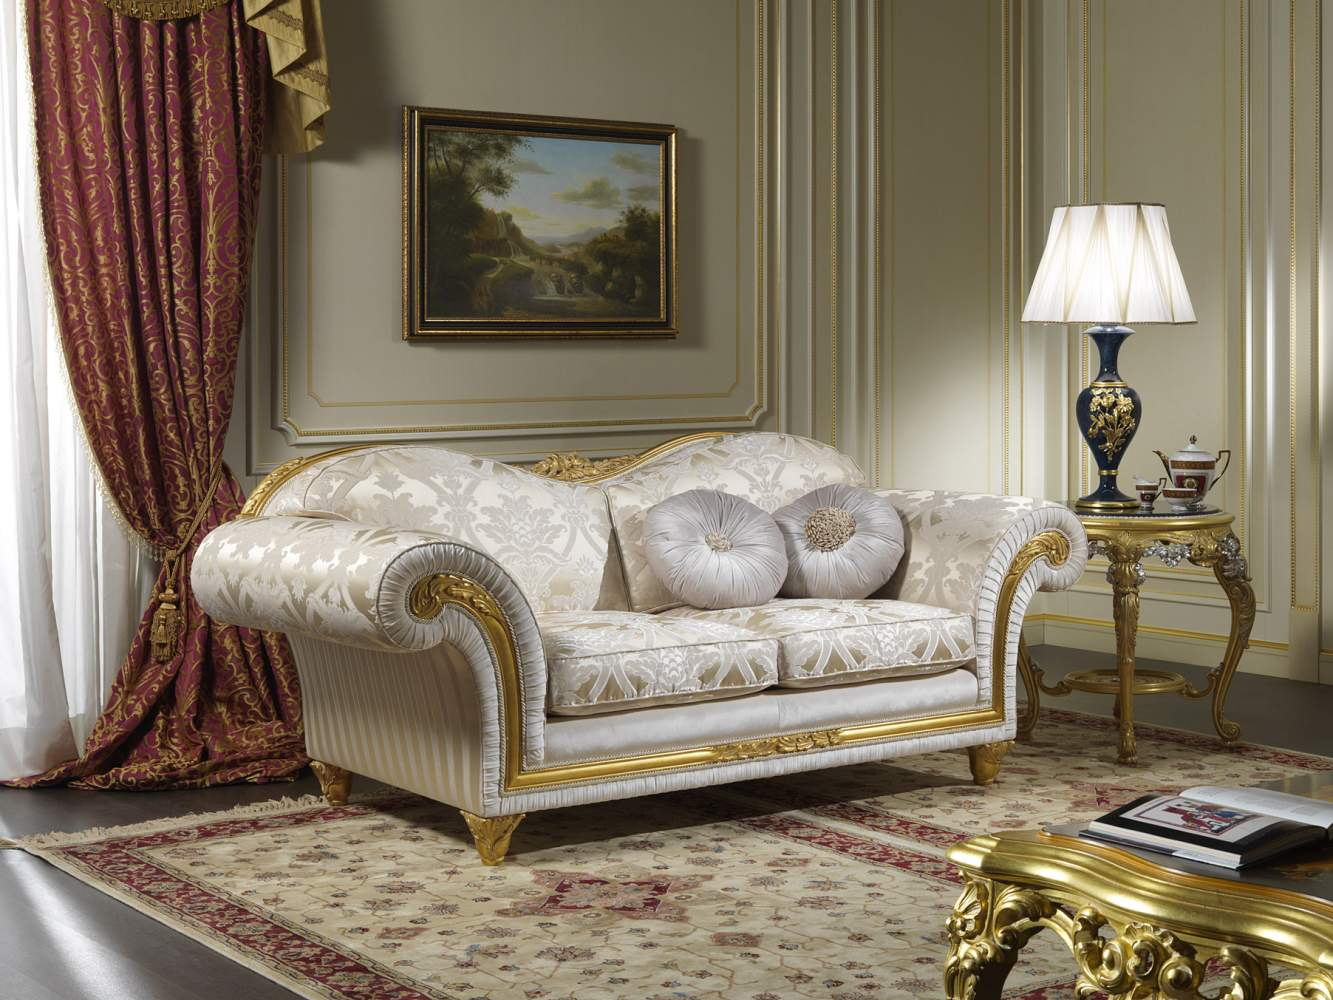 Furnishing for living room in classic style Excelsior